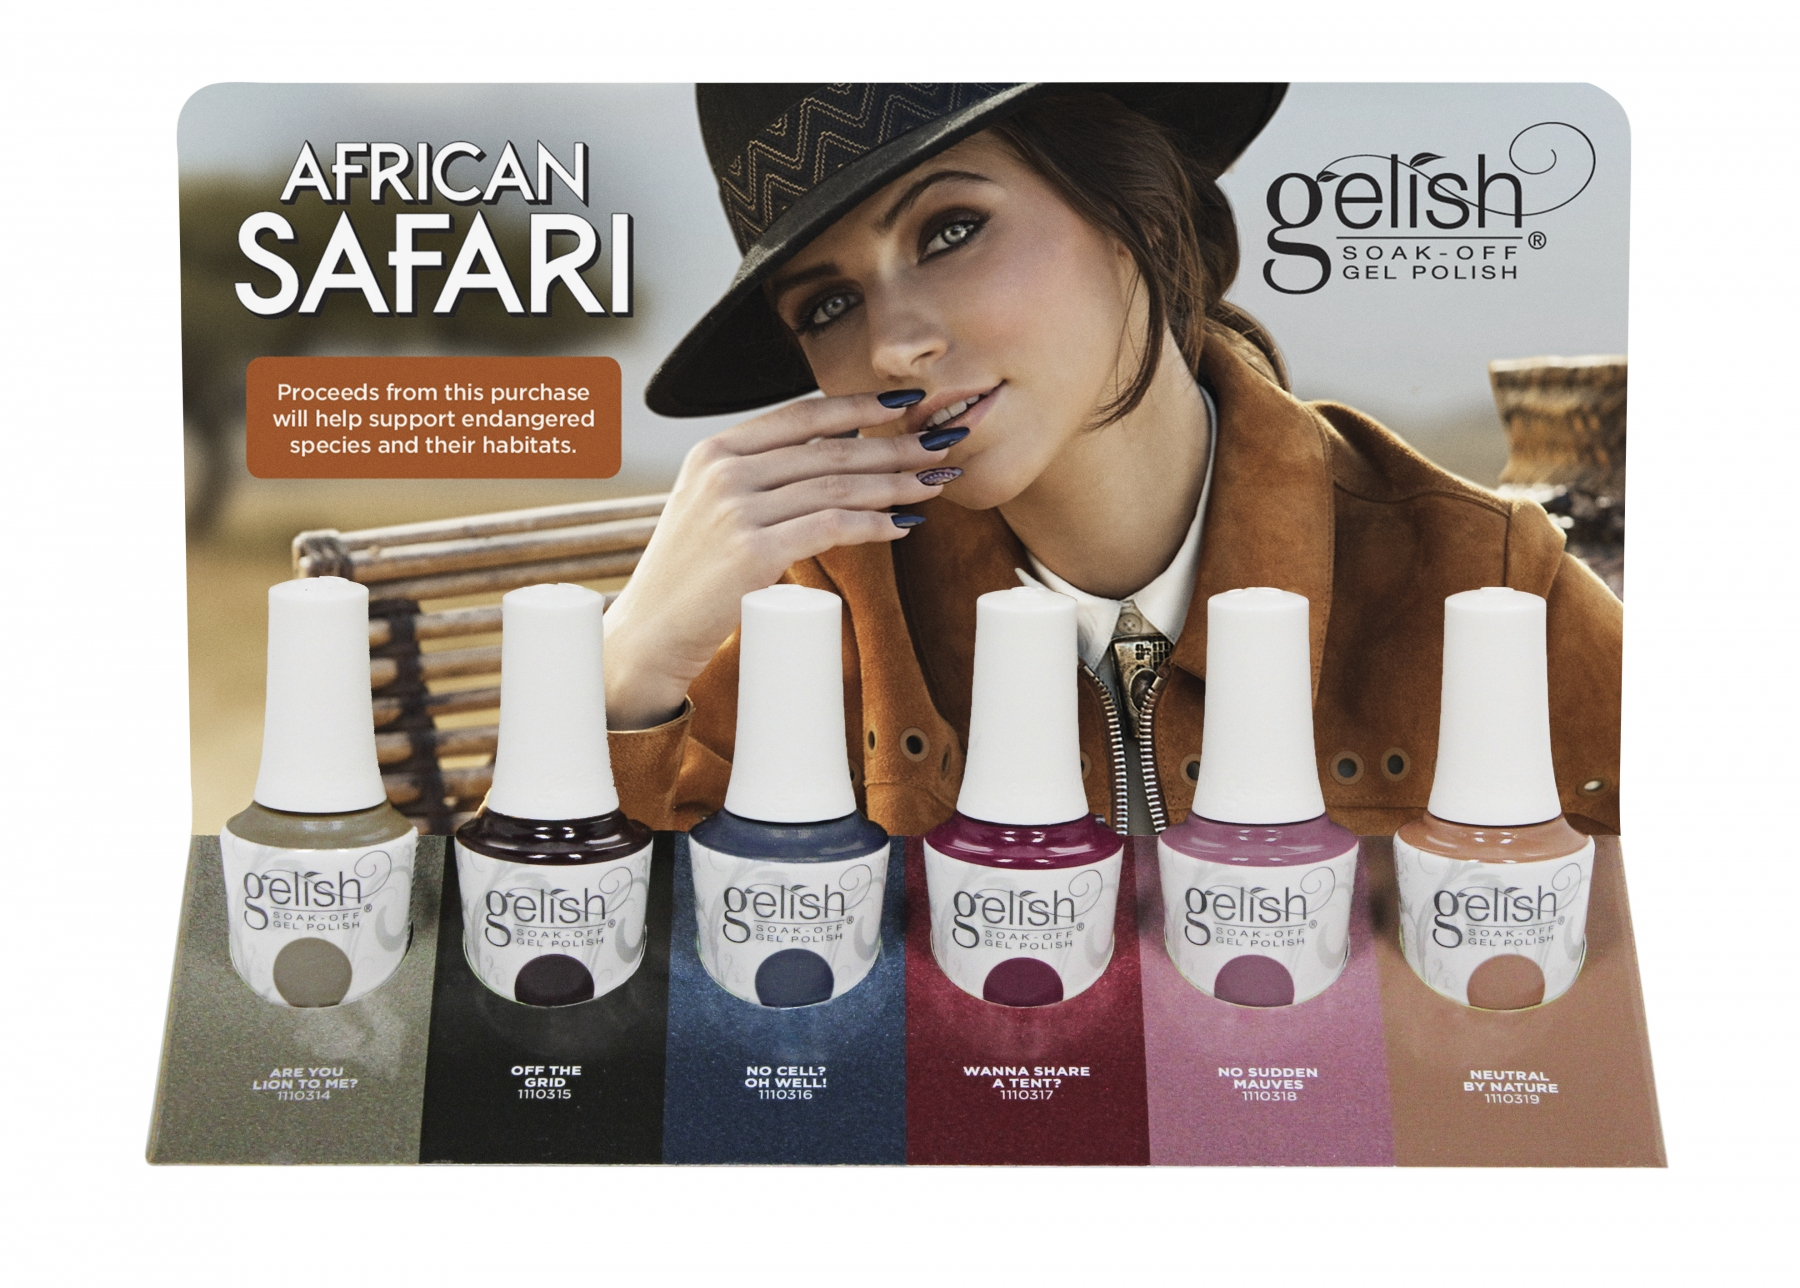 African safari 2018 collection complete 6 piece set